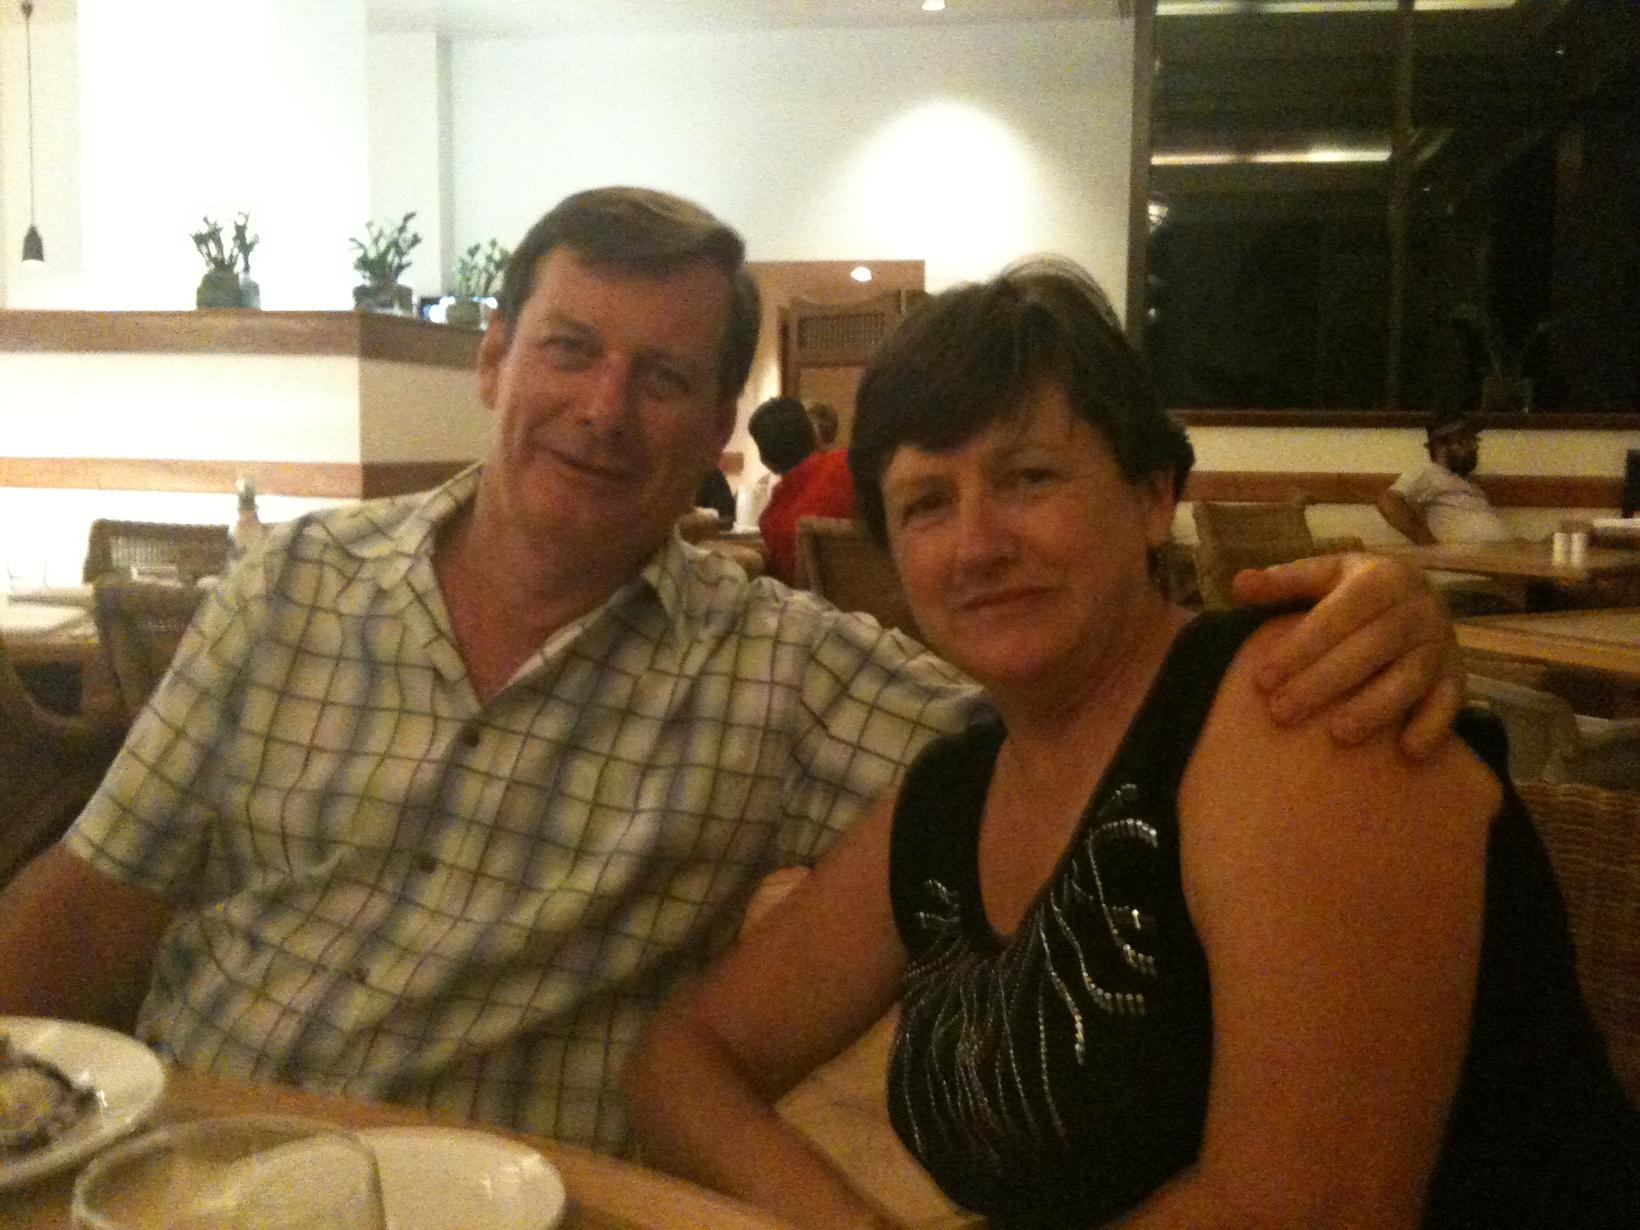 Heather & Paul from Gold Coast, Queensland, Australia